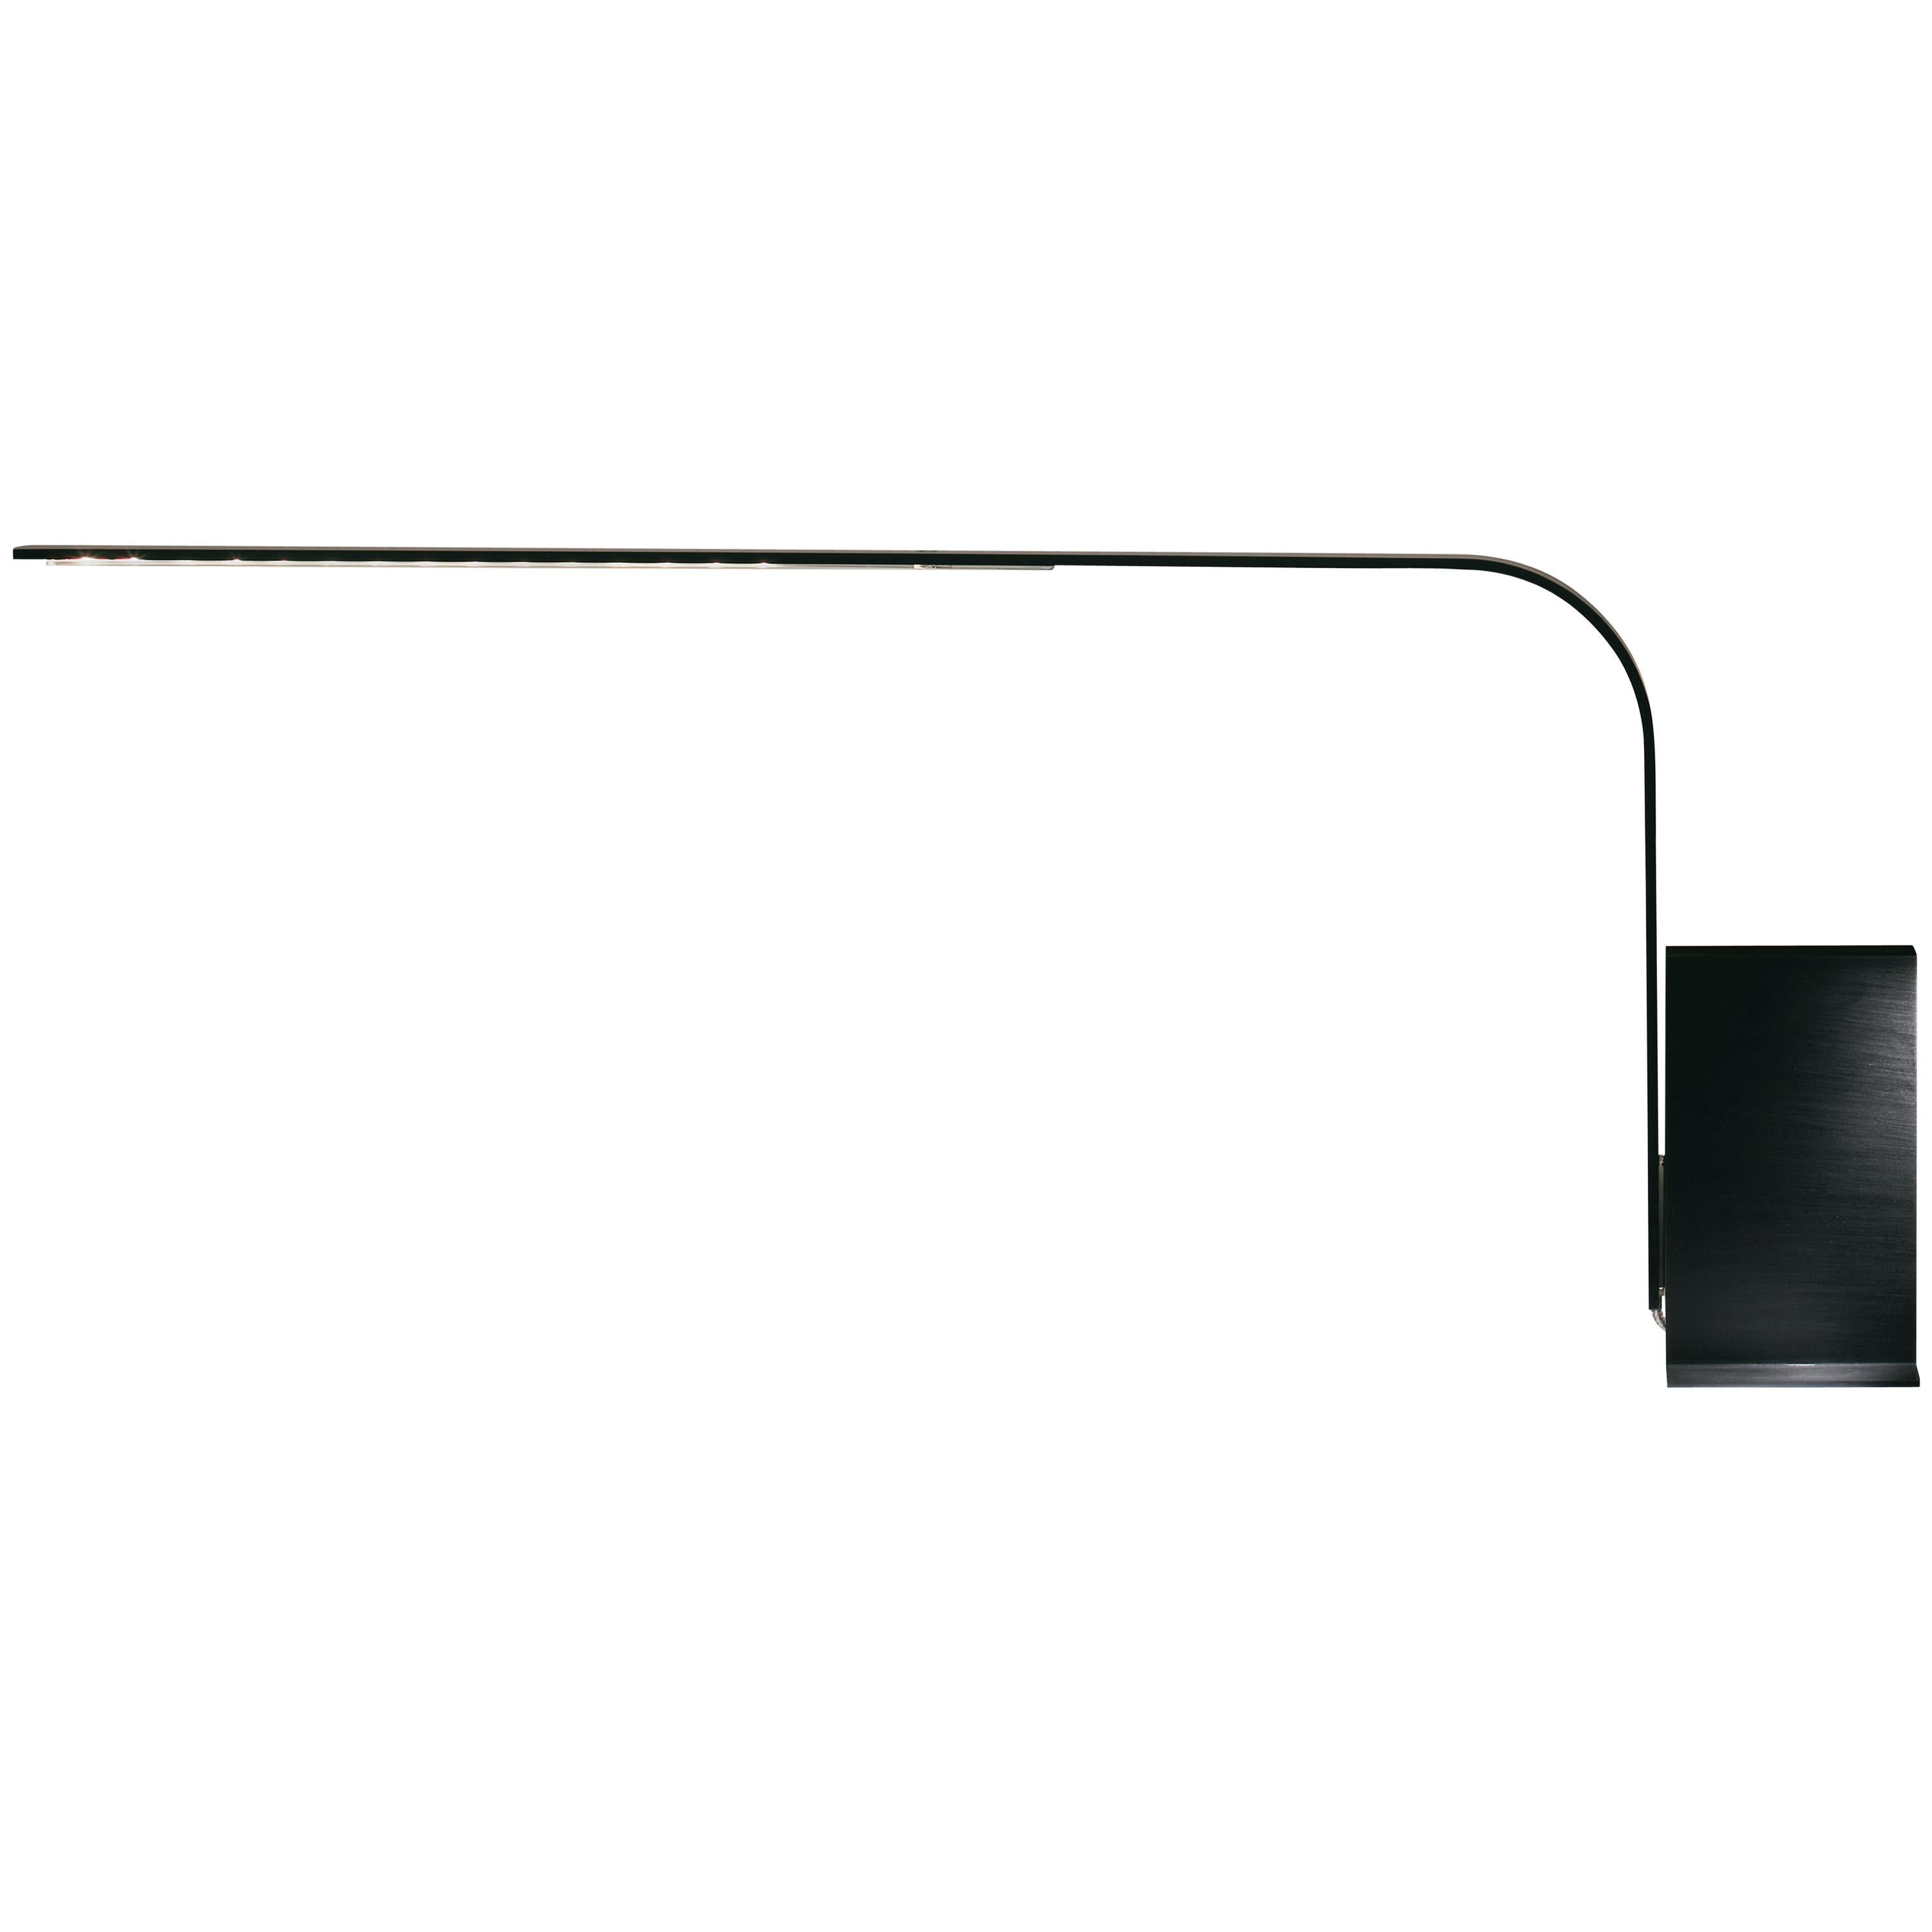 Lim L Table Lamp in Black by Pablo Designs